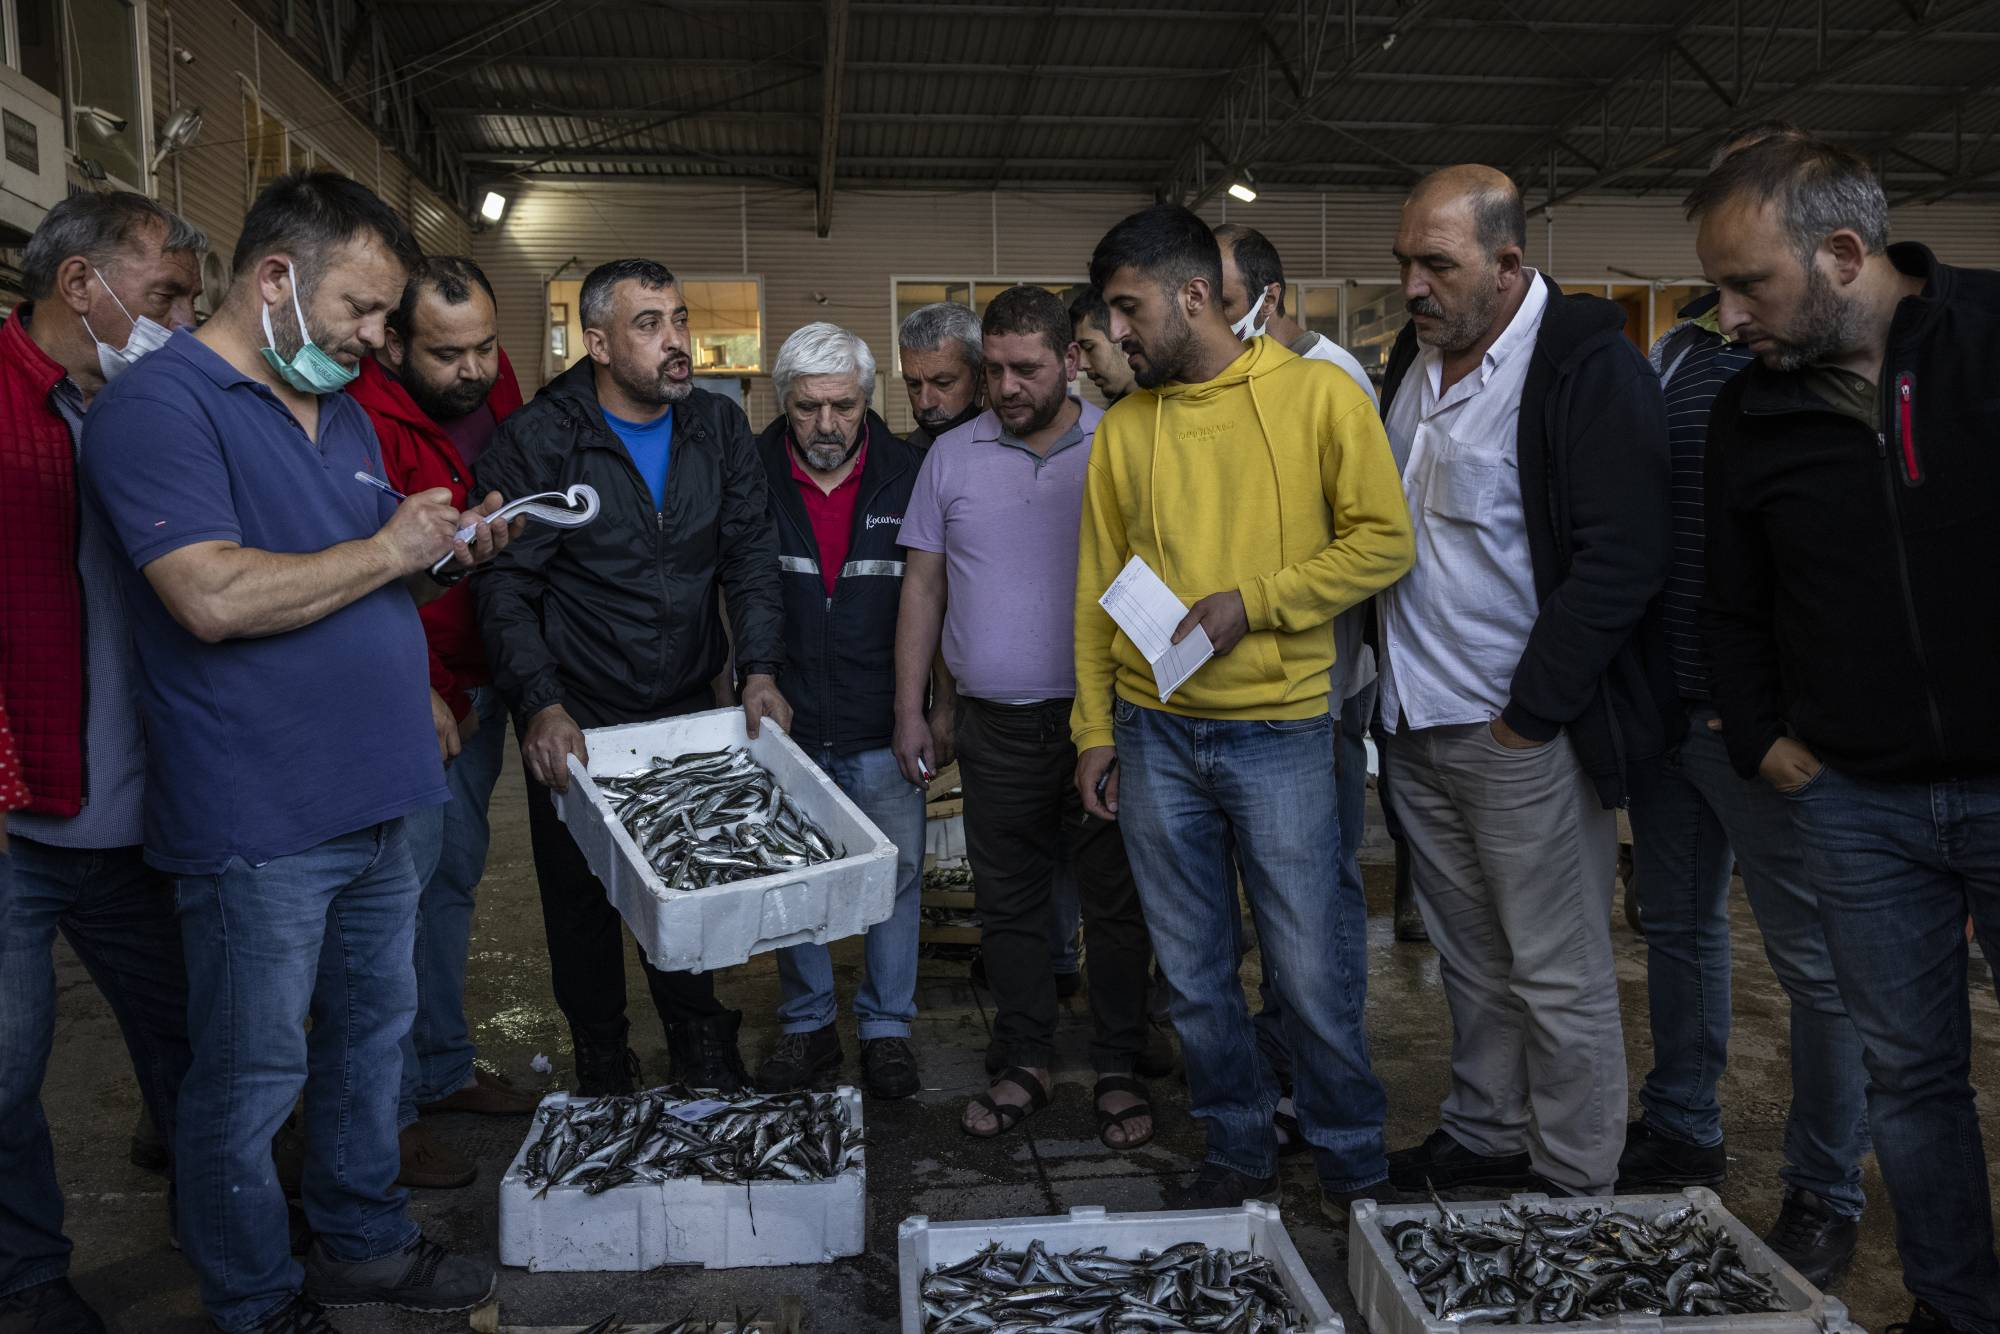 The mucilage in the Sea of Marmara is creating a crisis for the fishing industry: Customers are scared to eat the fish. | IVOR PRICKETT / THE NEW YORK TIMES